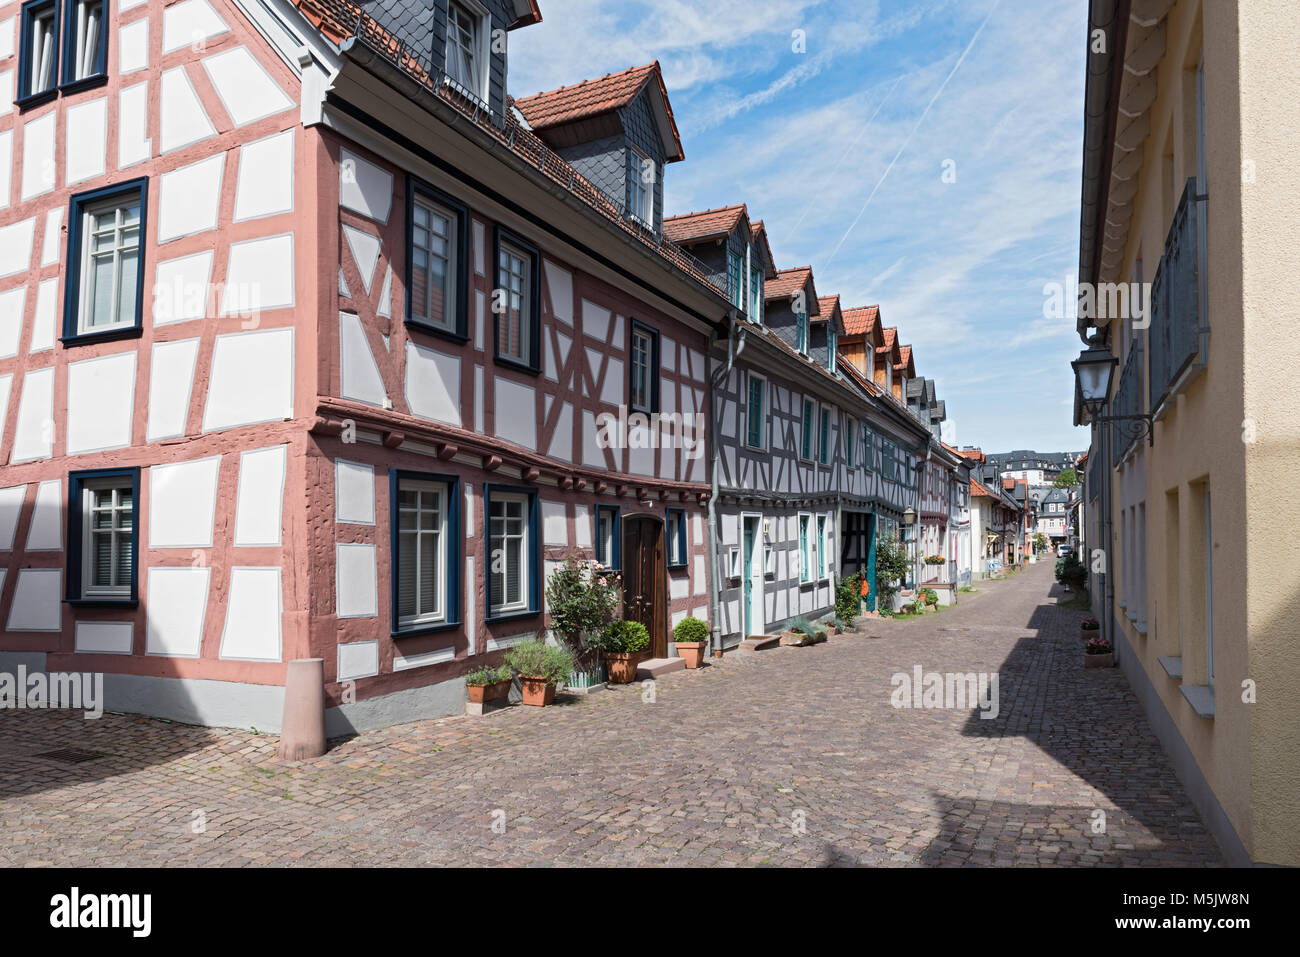 Small alley with half-timbered houses in the old town of Idstein, Hesse, Germany - Stock Image